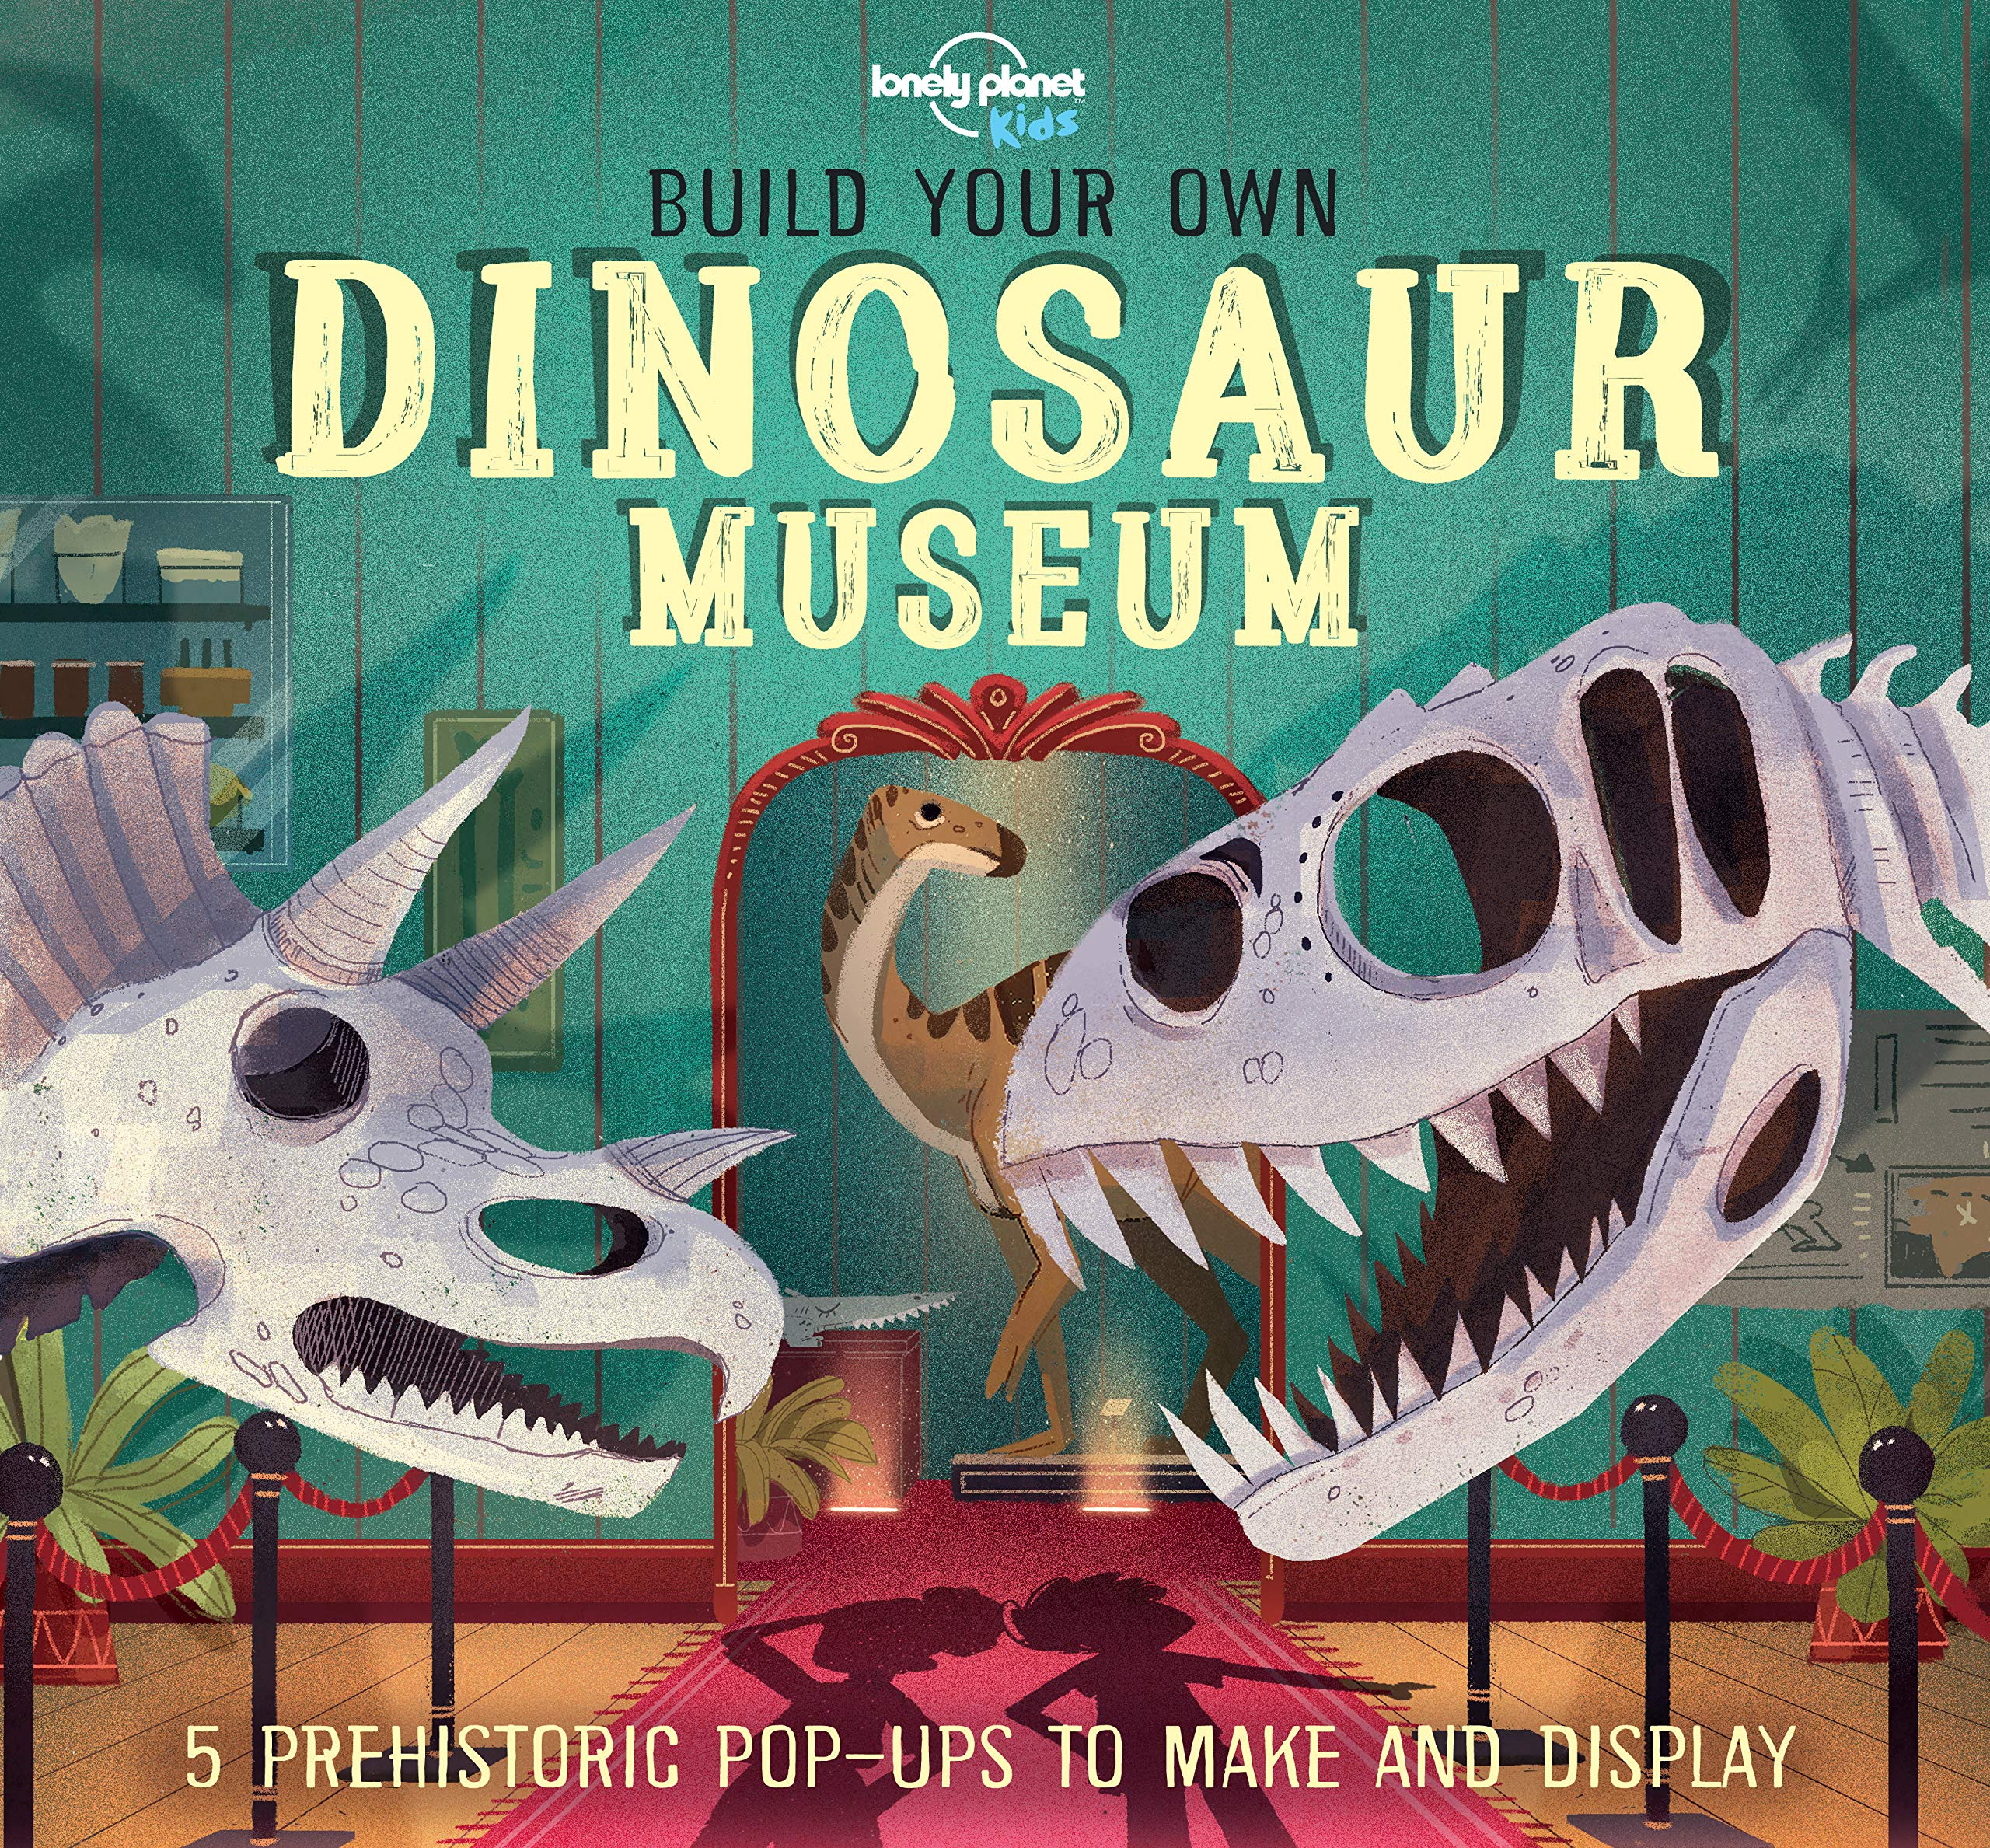 Build Your Own Dinosaur Museum